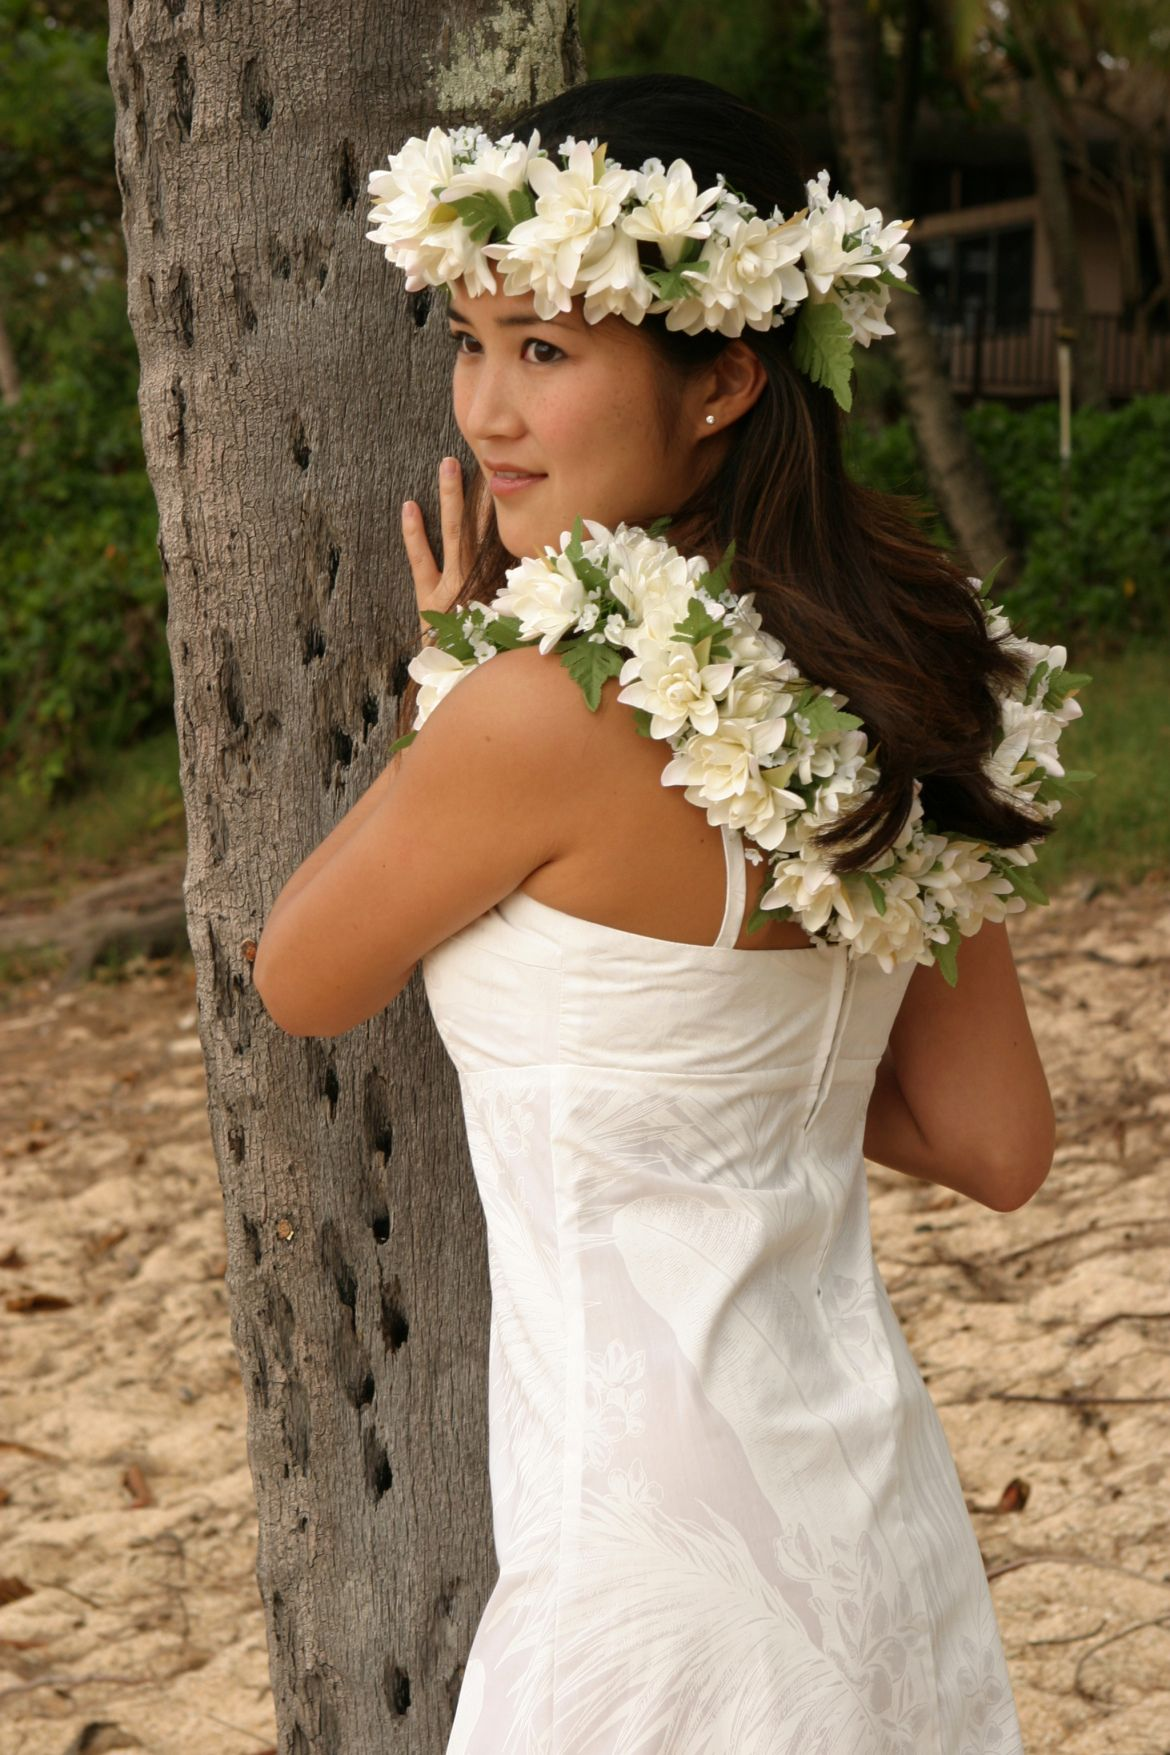 70+ Hawaiian Style Wedding Dresses - Dresses for Guest at Wedding ...